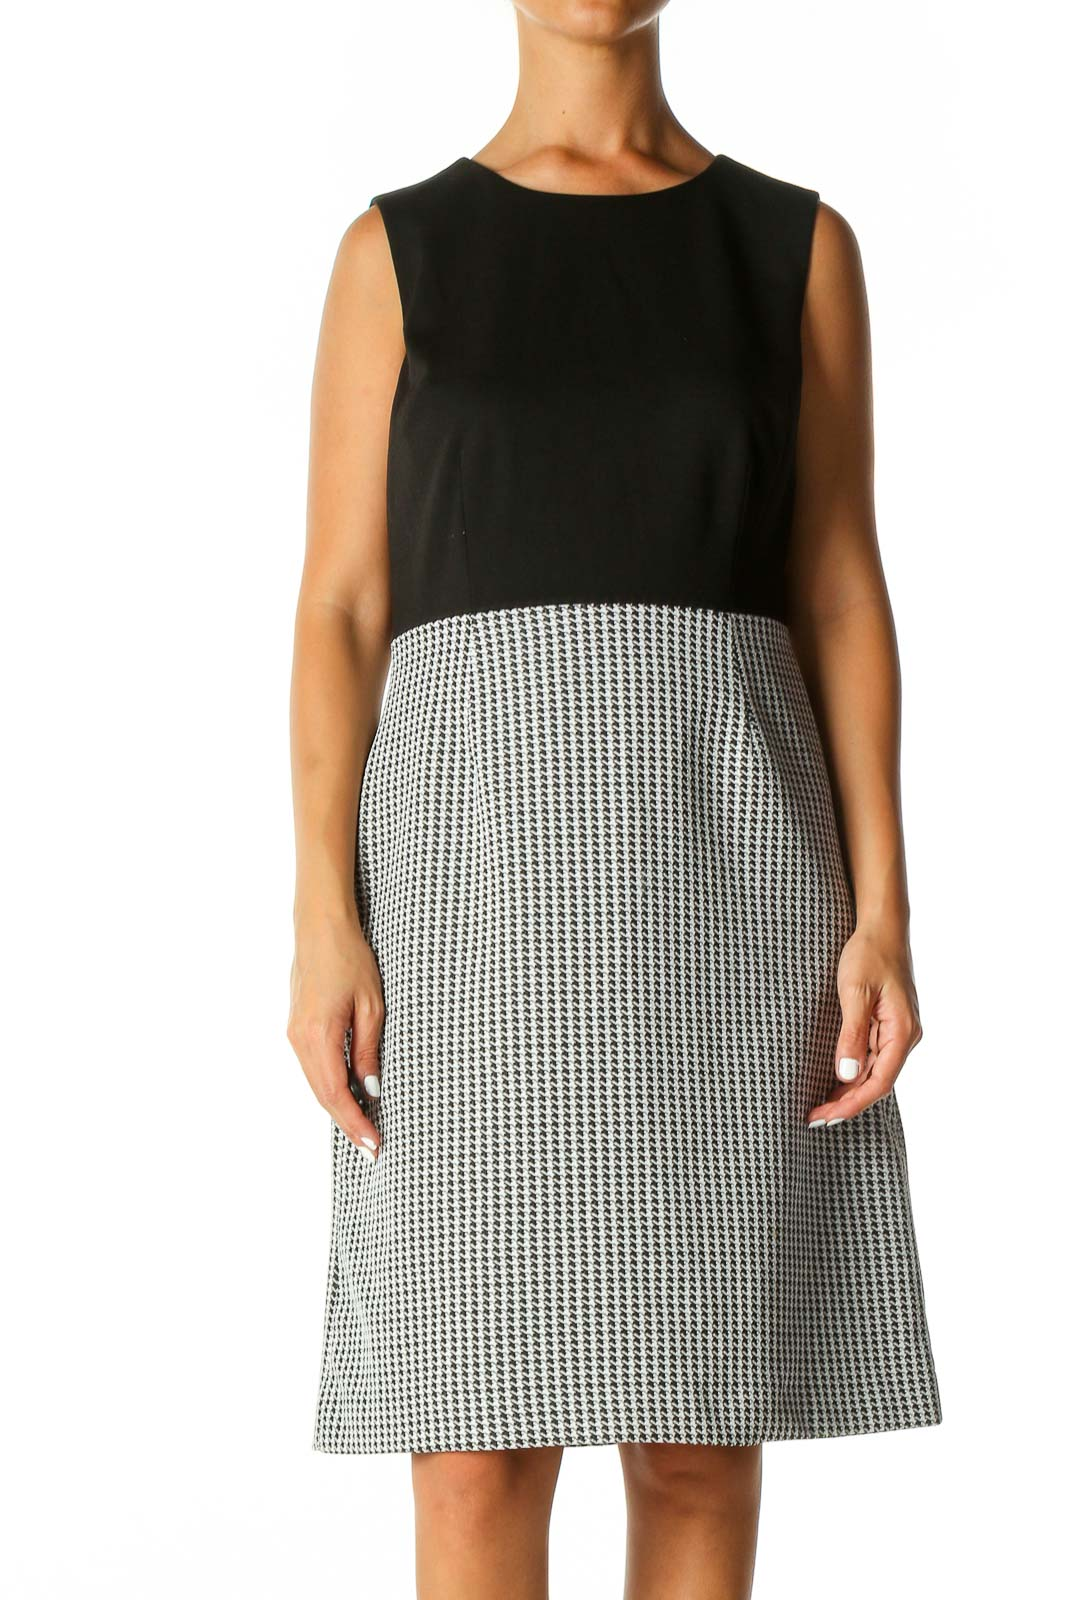 Black Checkered Classic A-Line Dress Front